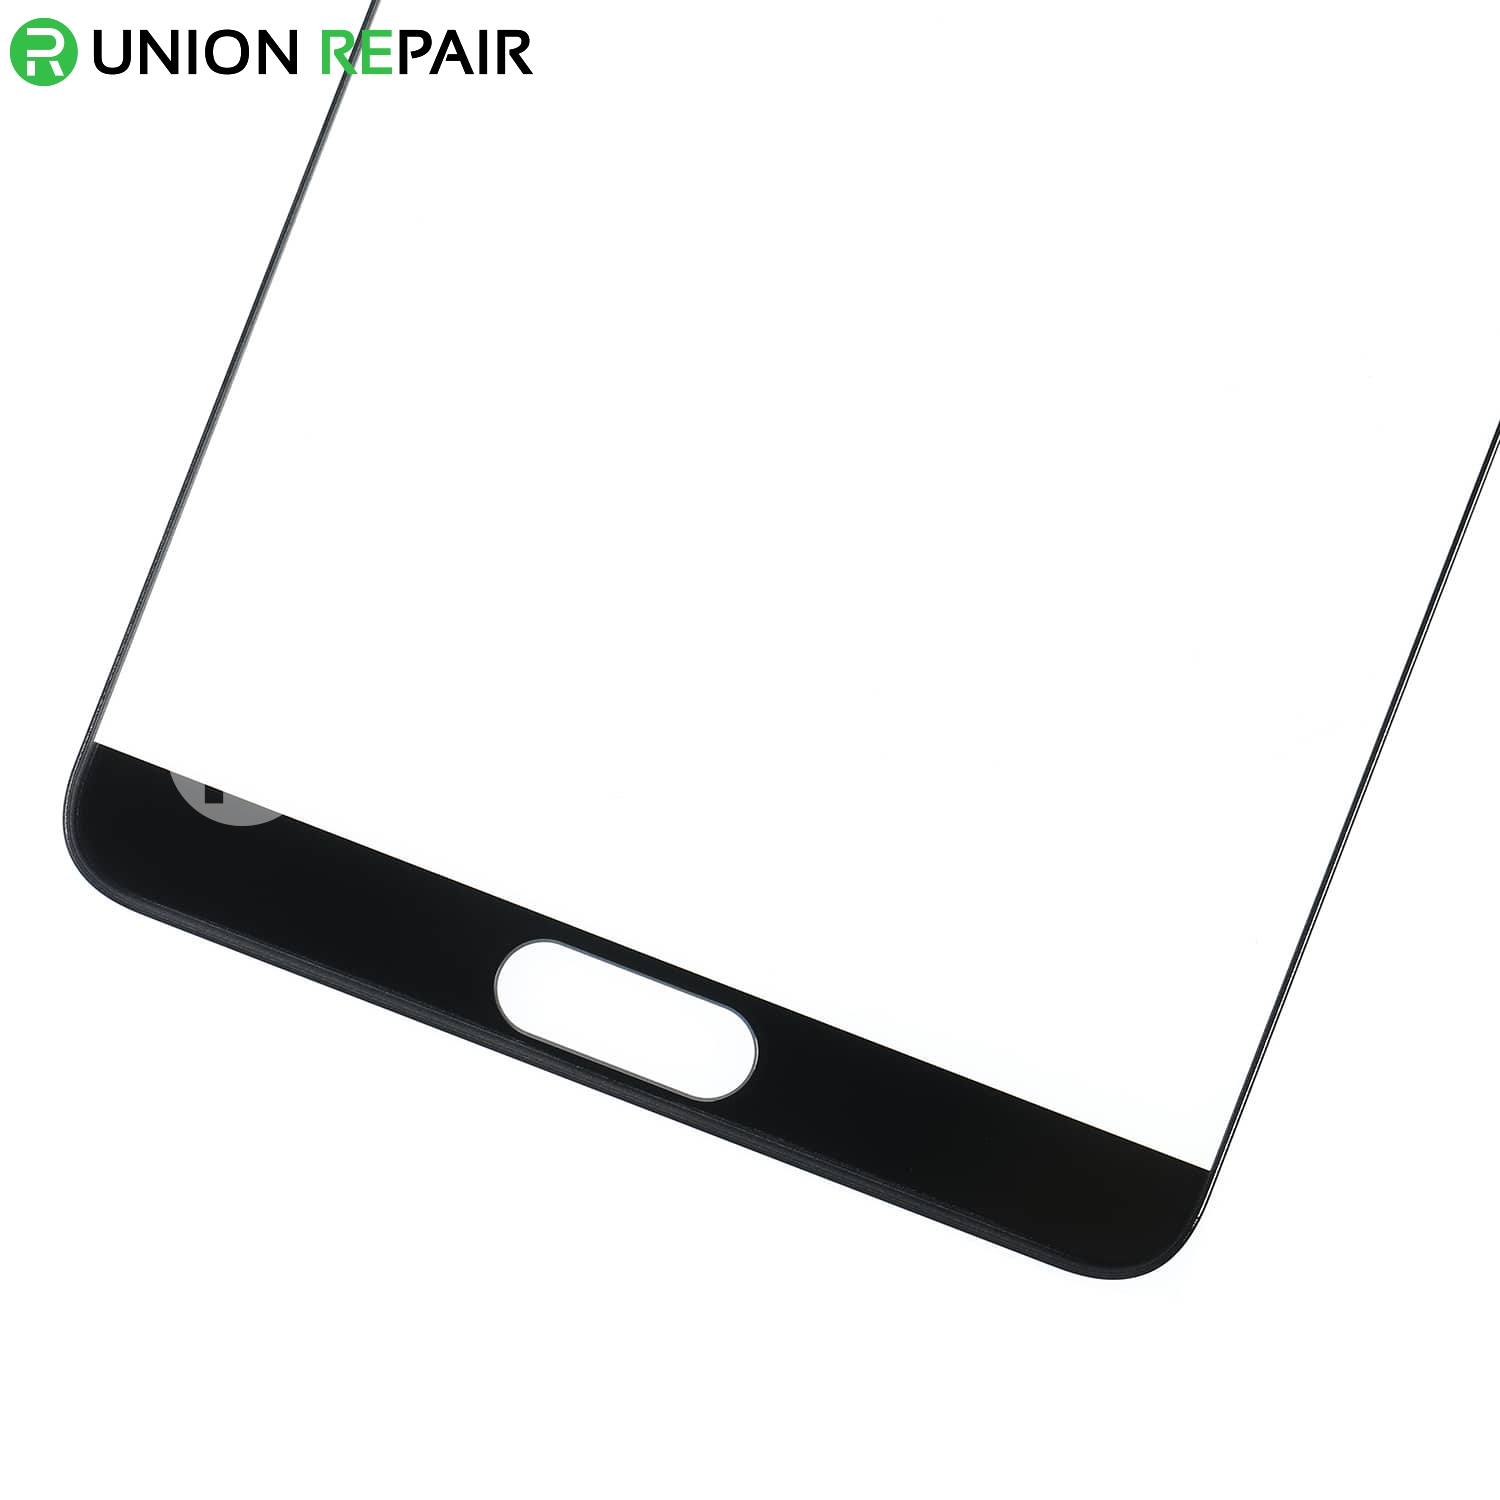 Replacement for Huawei Mate 10 Front Glass - Black, fig. 4